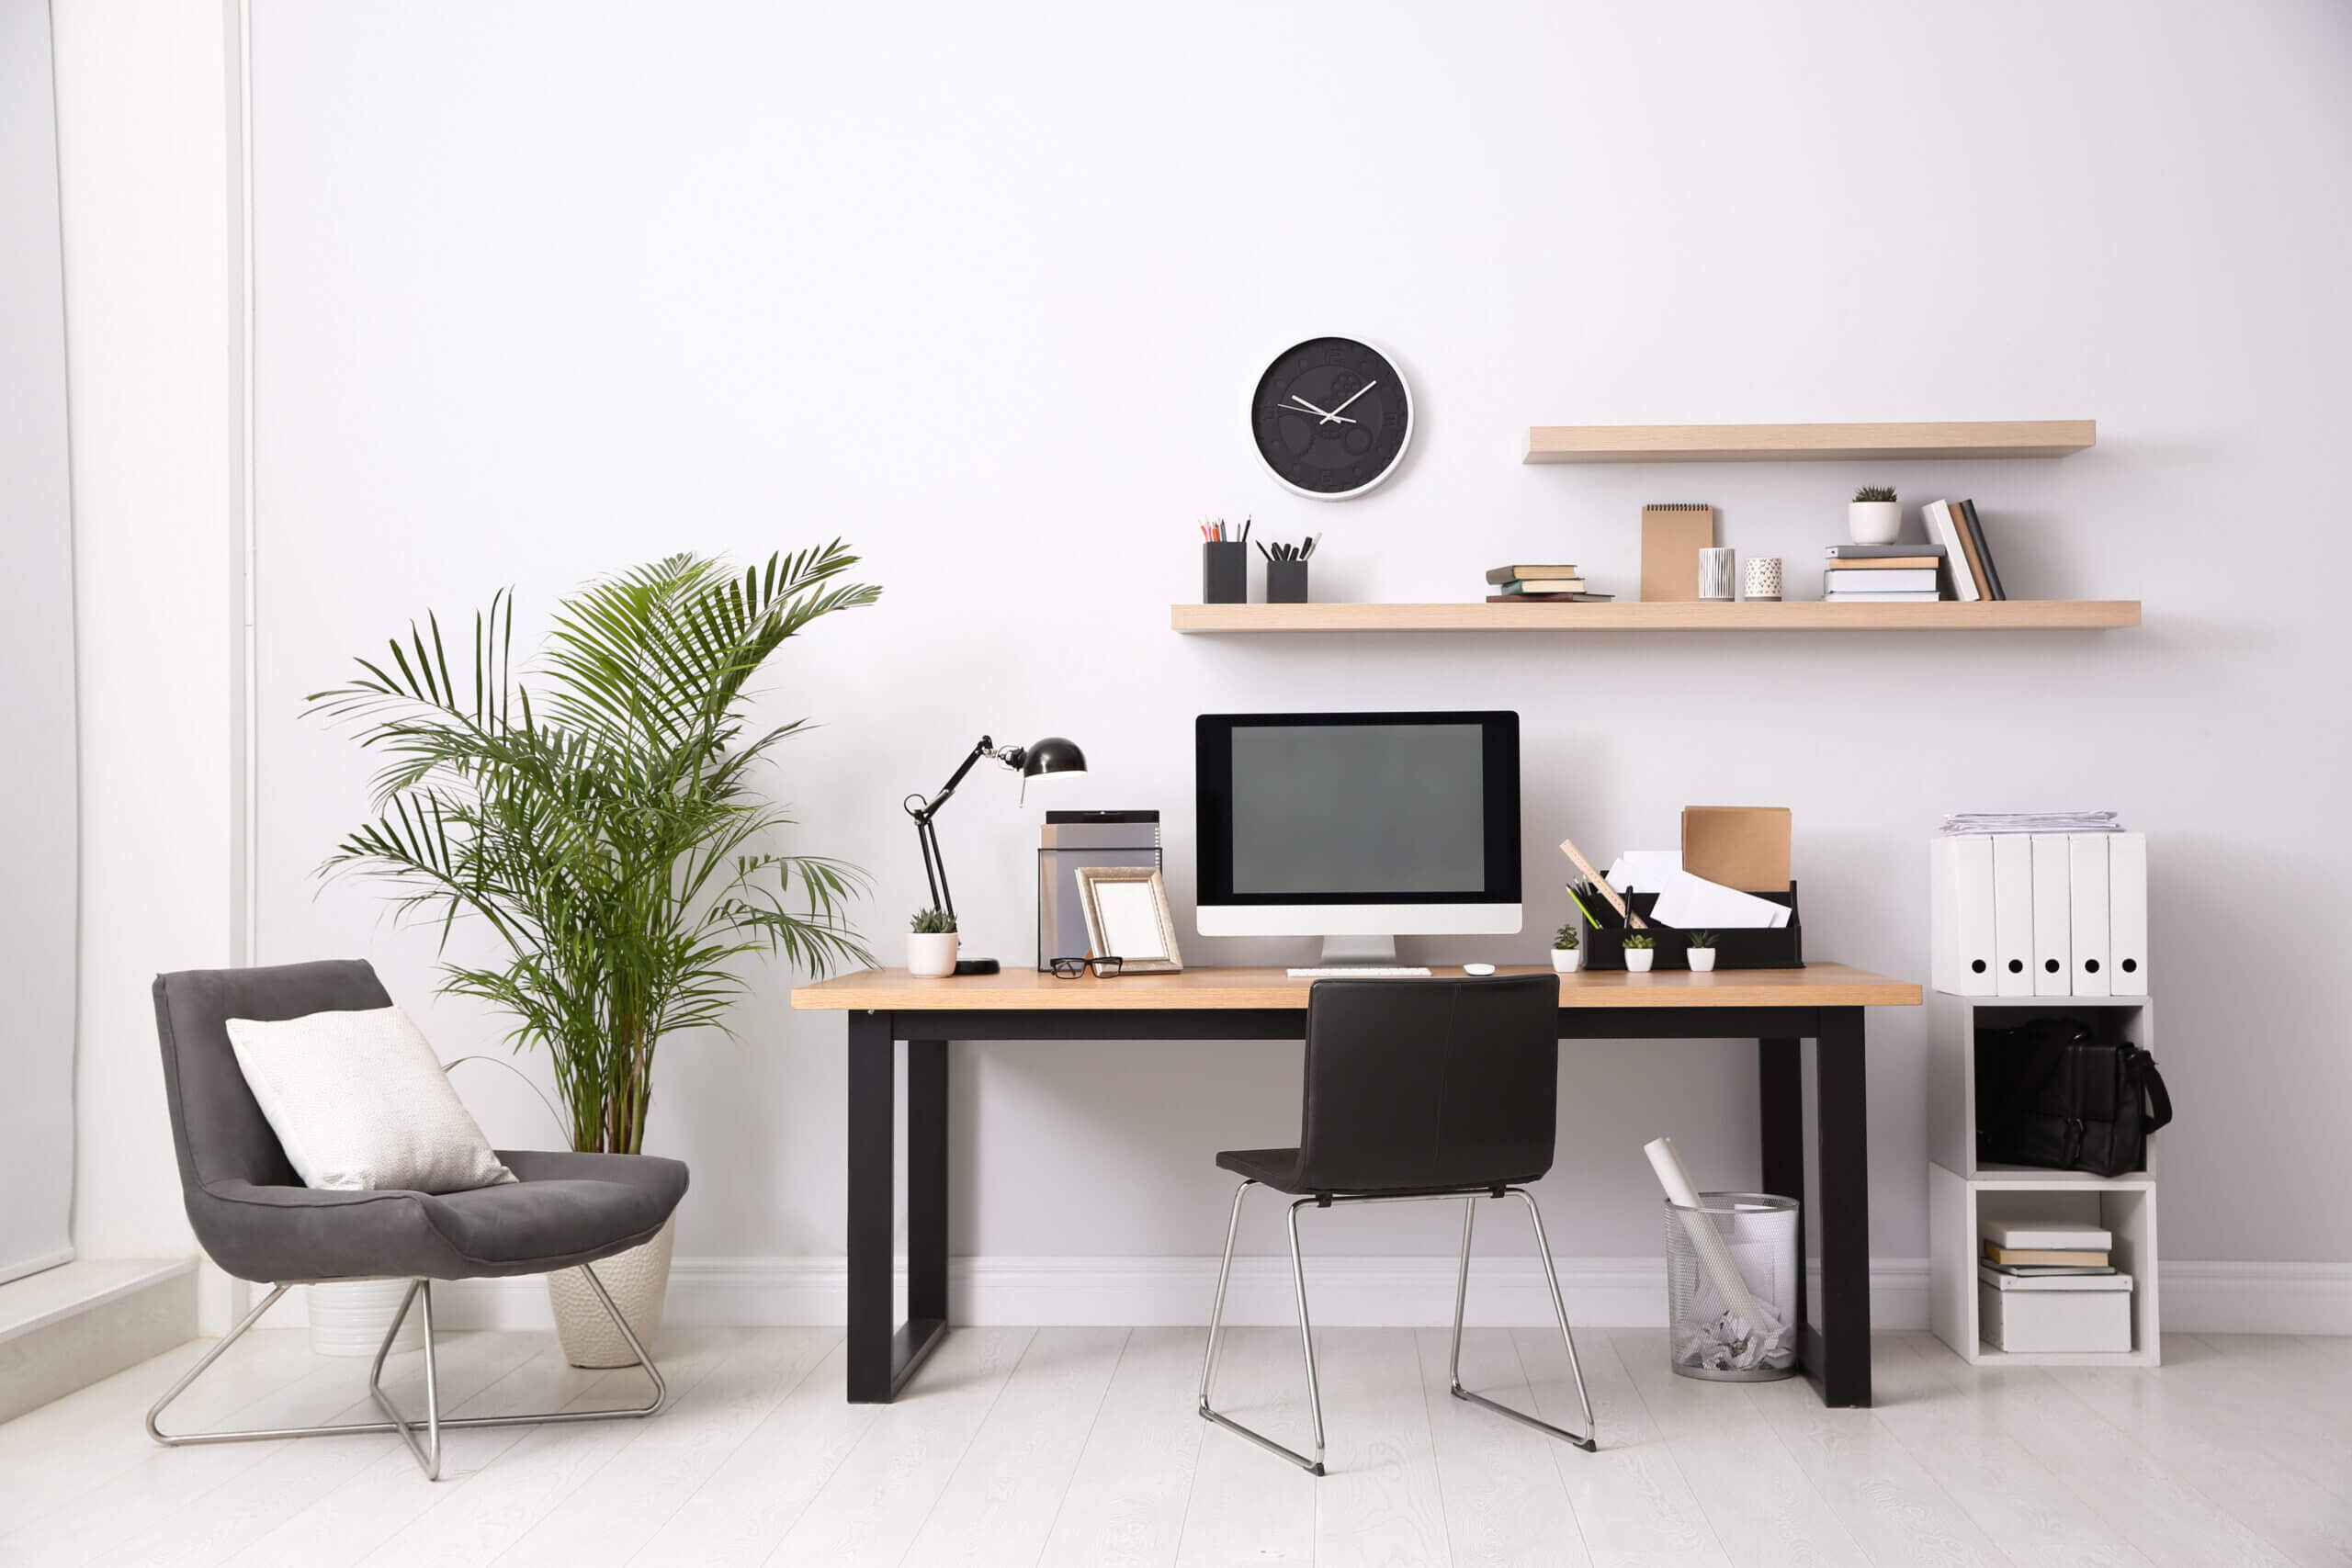 Modern Office Set with Houseplant